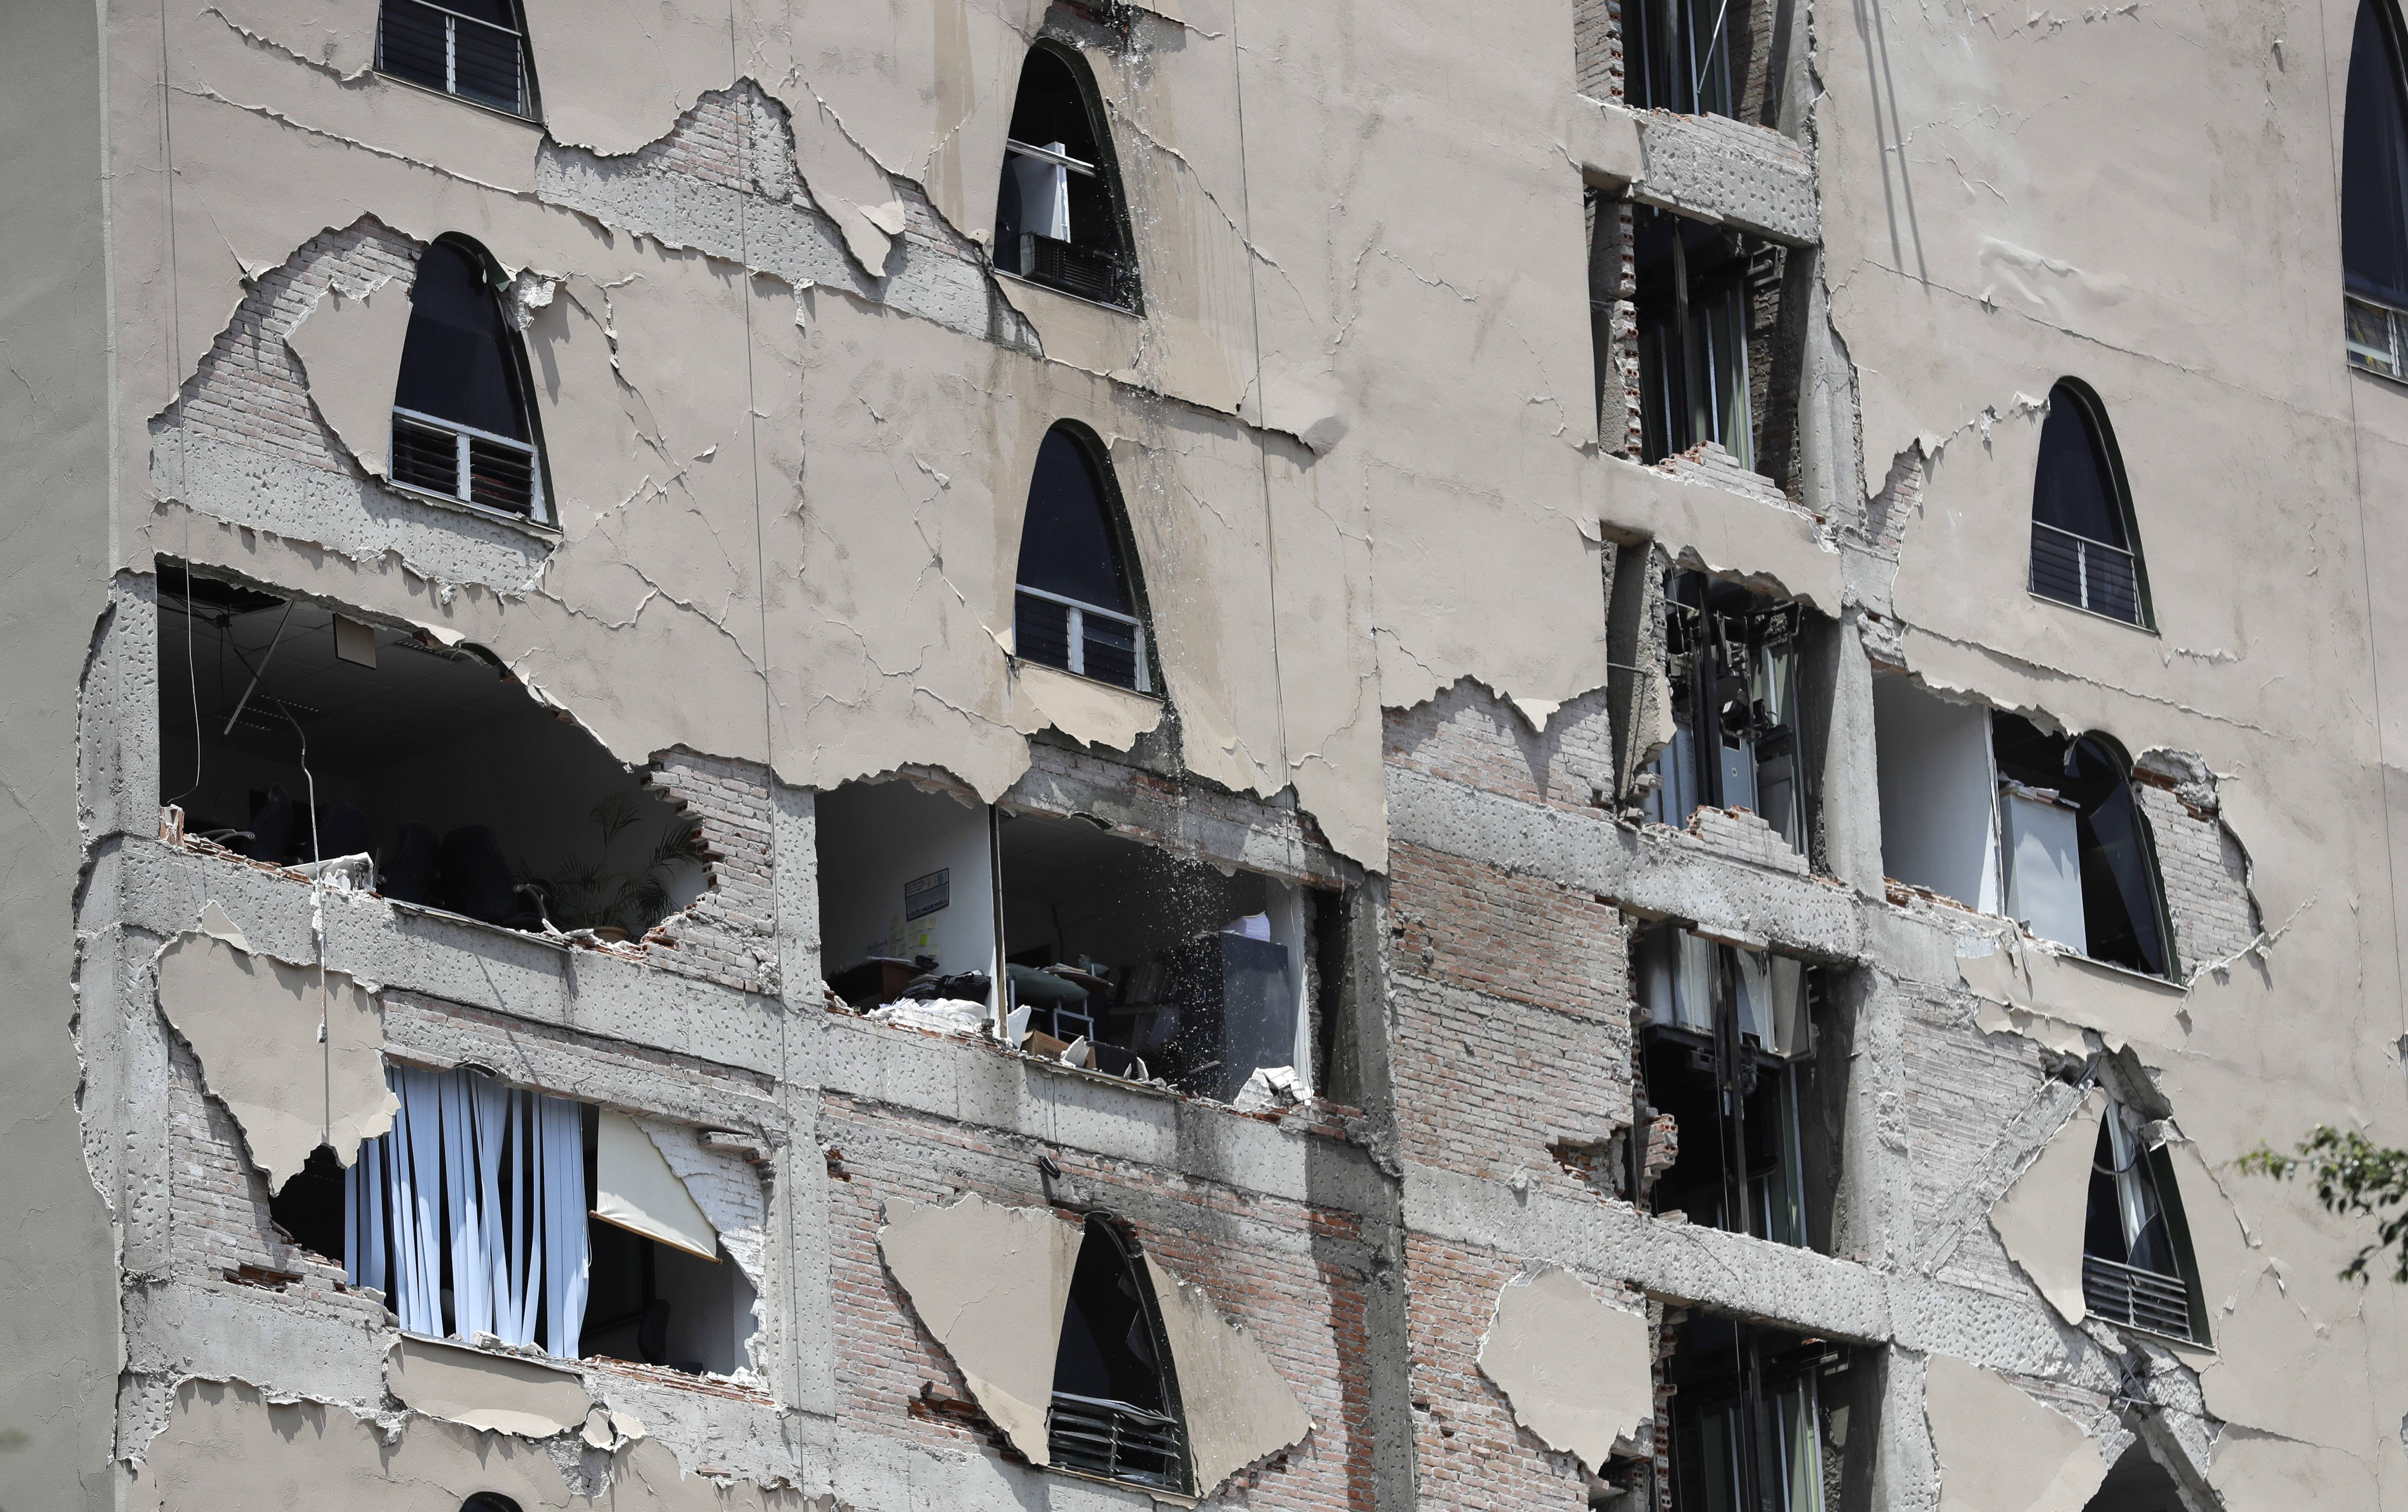 Remains of a damaged building Tuesday after an earthquake in Mexico City. A powerful earthquake has jolted Mexico, causing buildings to sway sickeningly in the capital on the anniversary of a 1985 quake that did major damage.